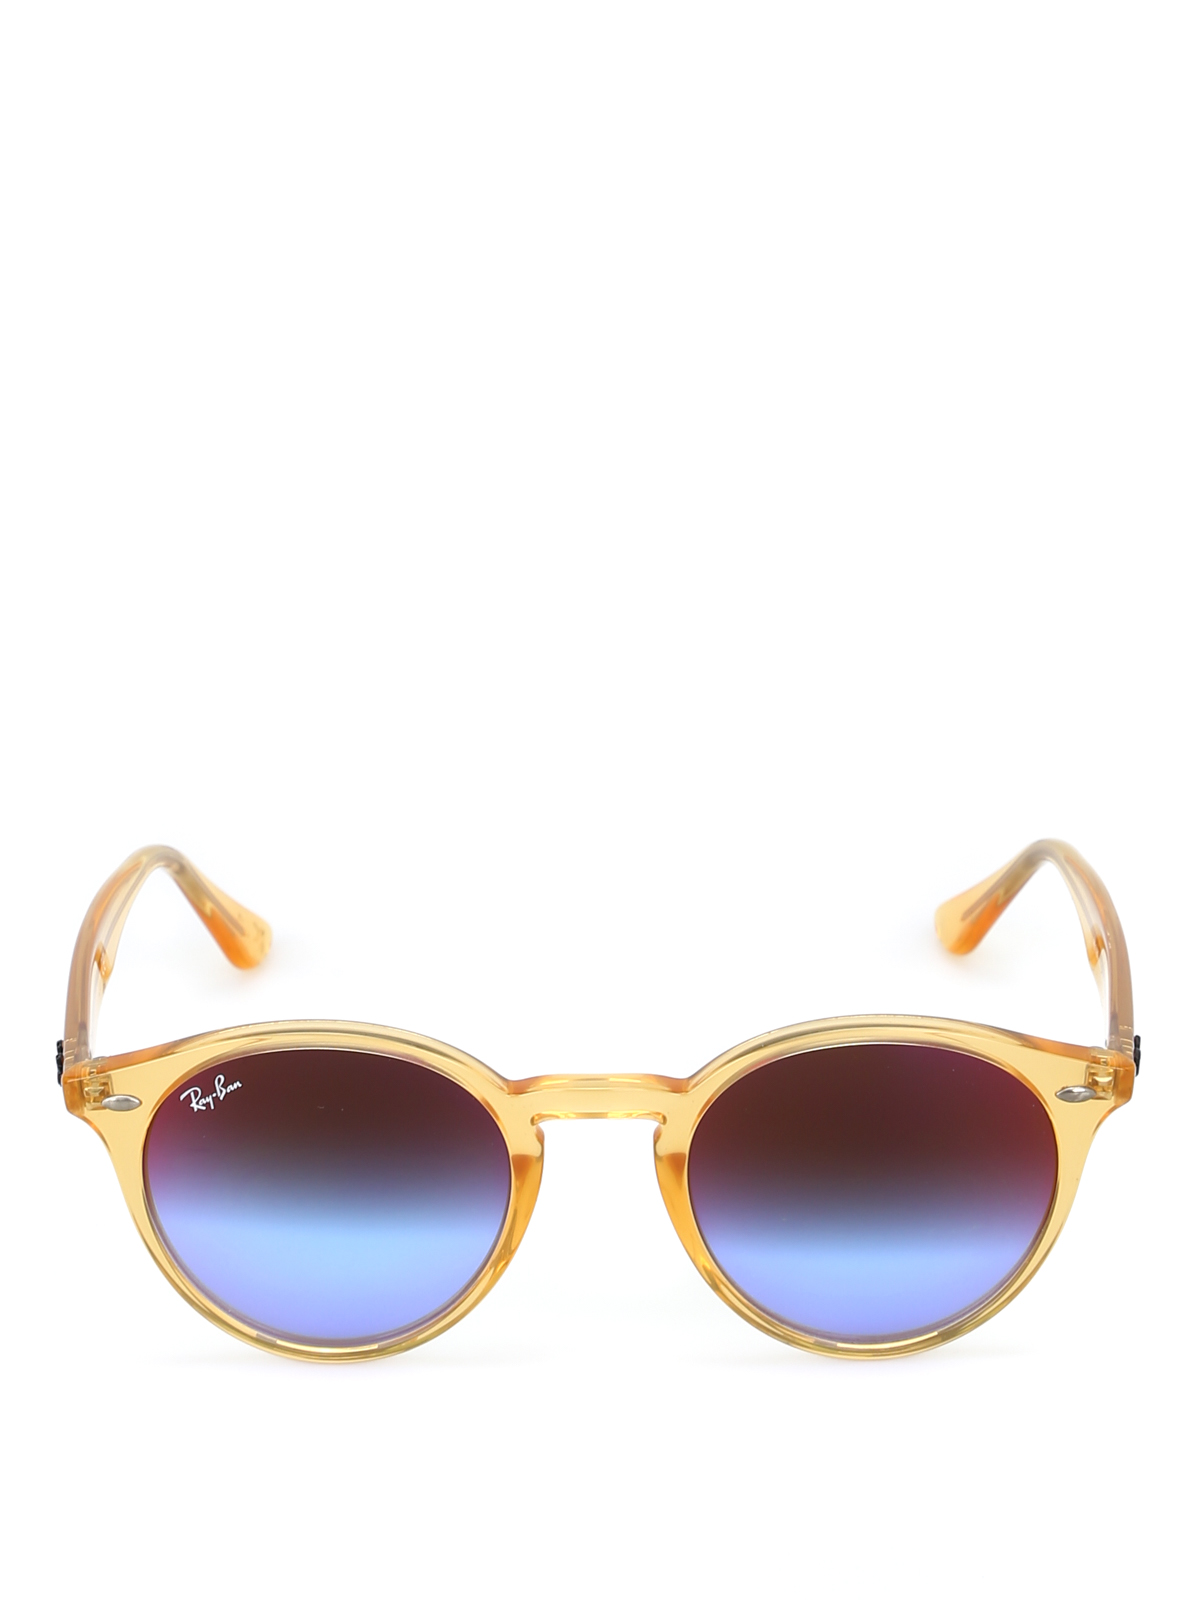 c15294598a Ray Ban - Violet and blue lenses sunglasses - sunglasses - RB2180 ...